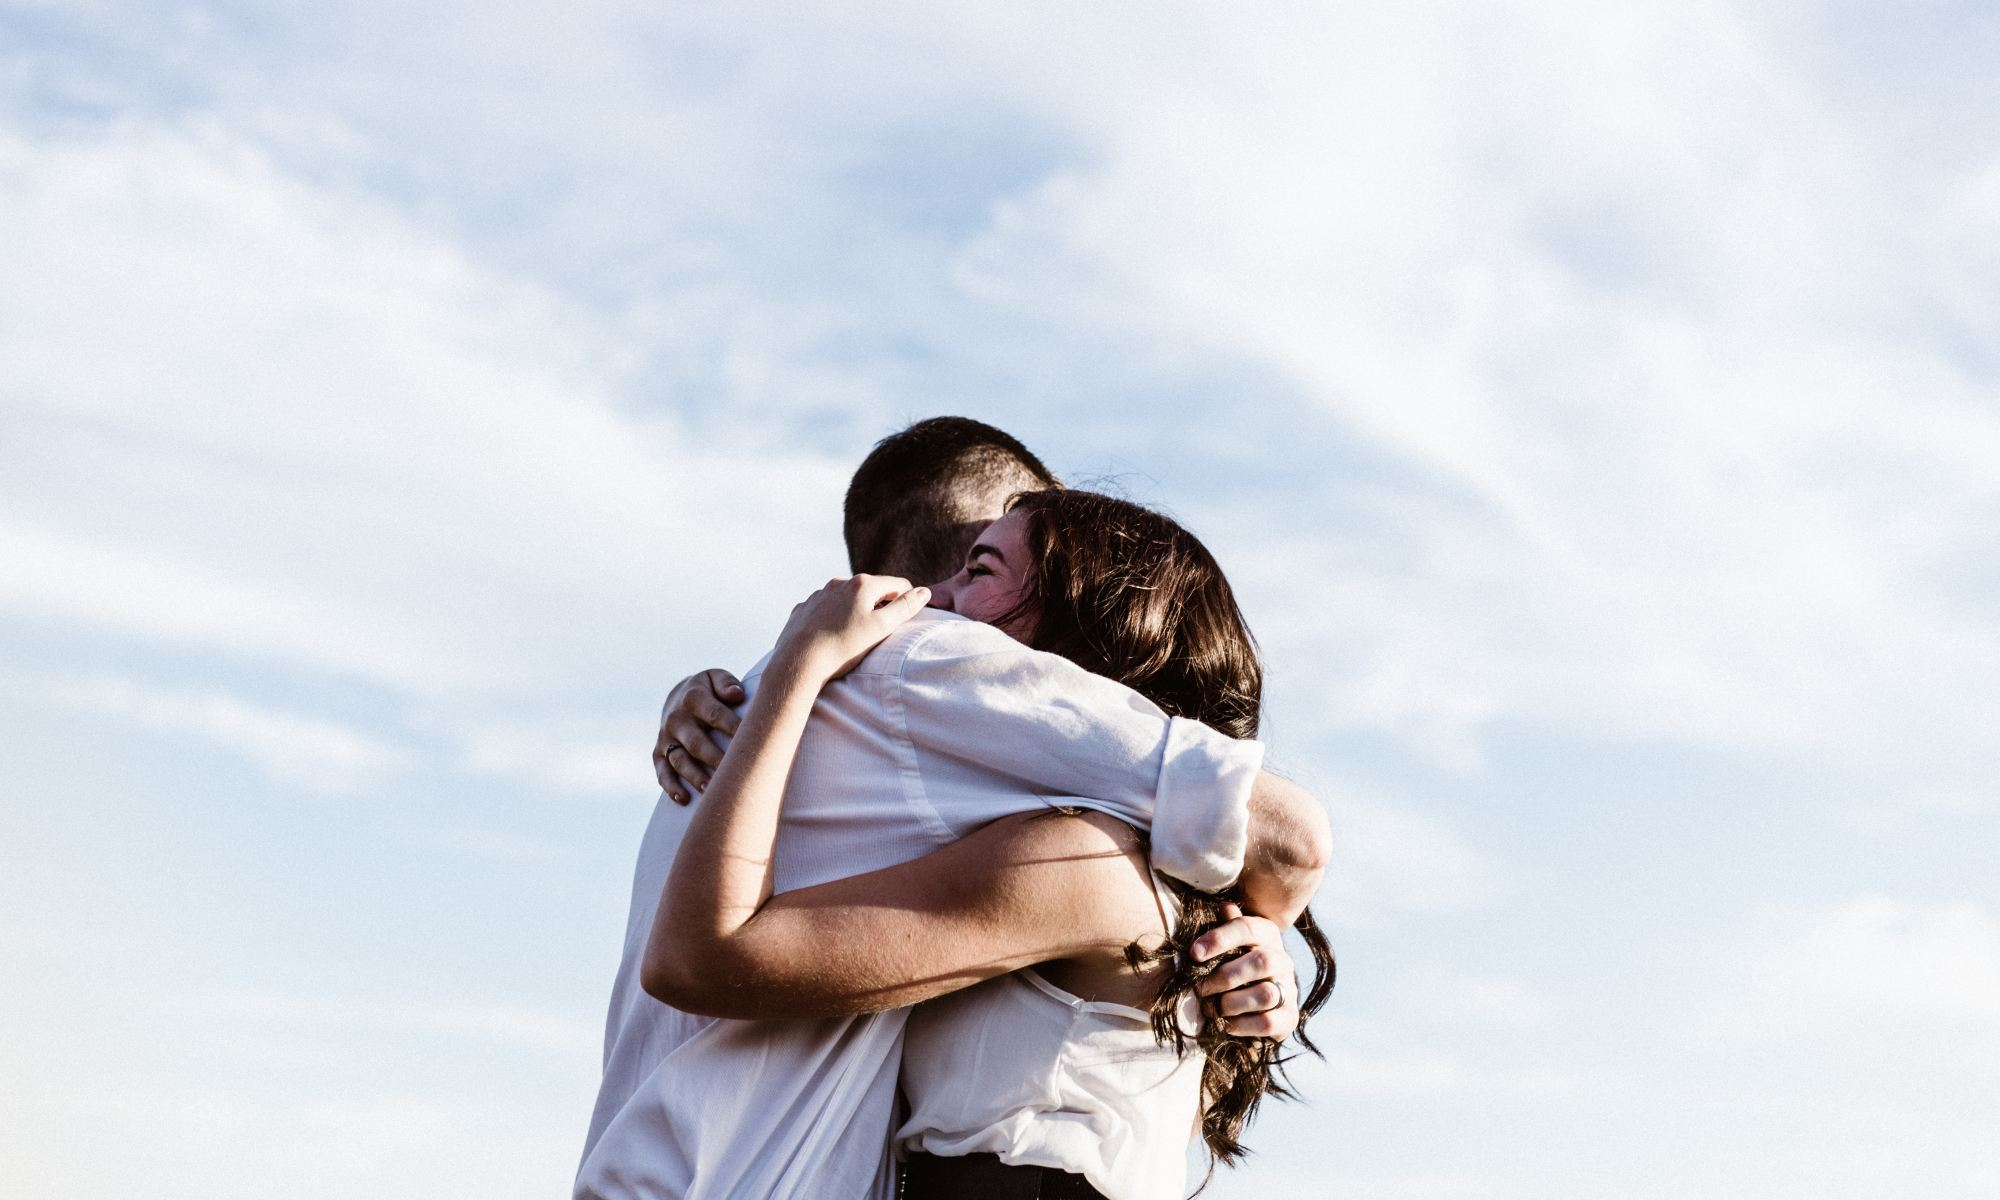 Man and woman hugging and showing empathy for each other